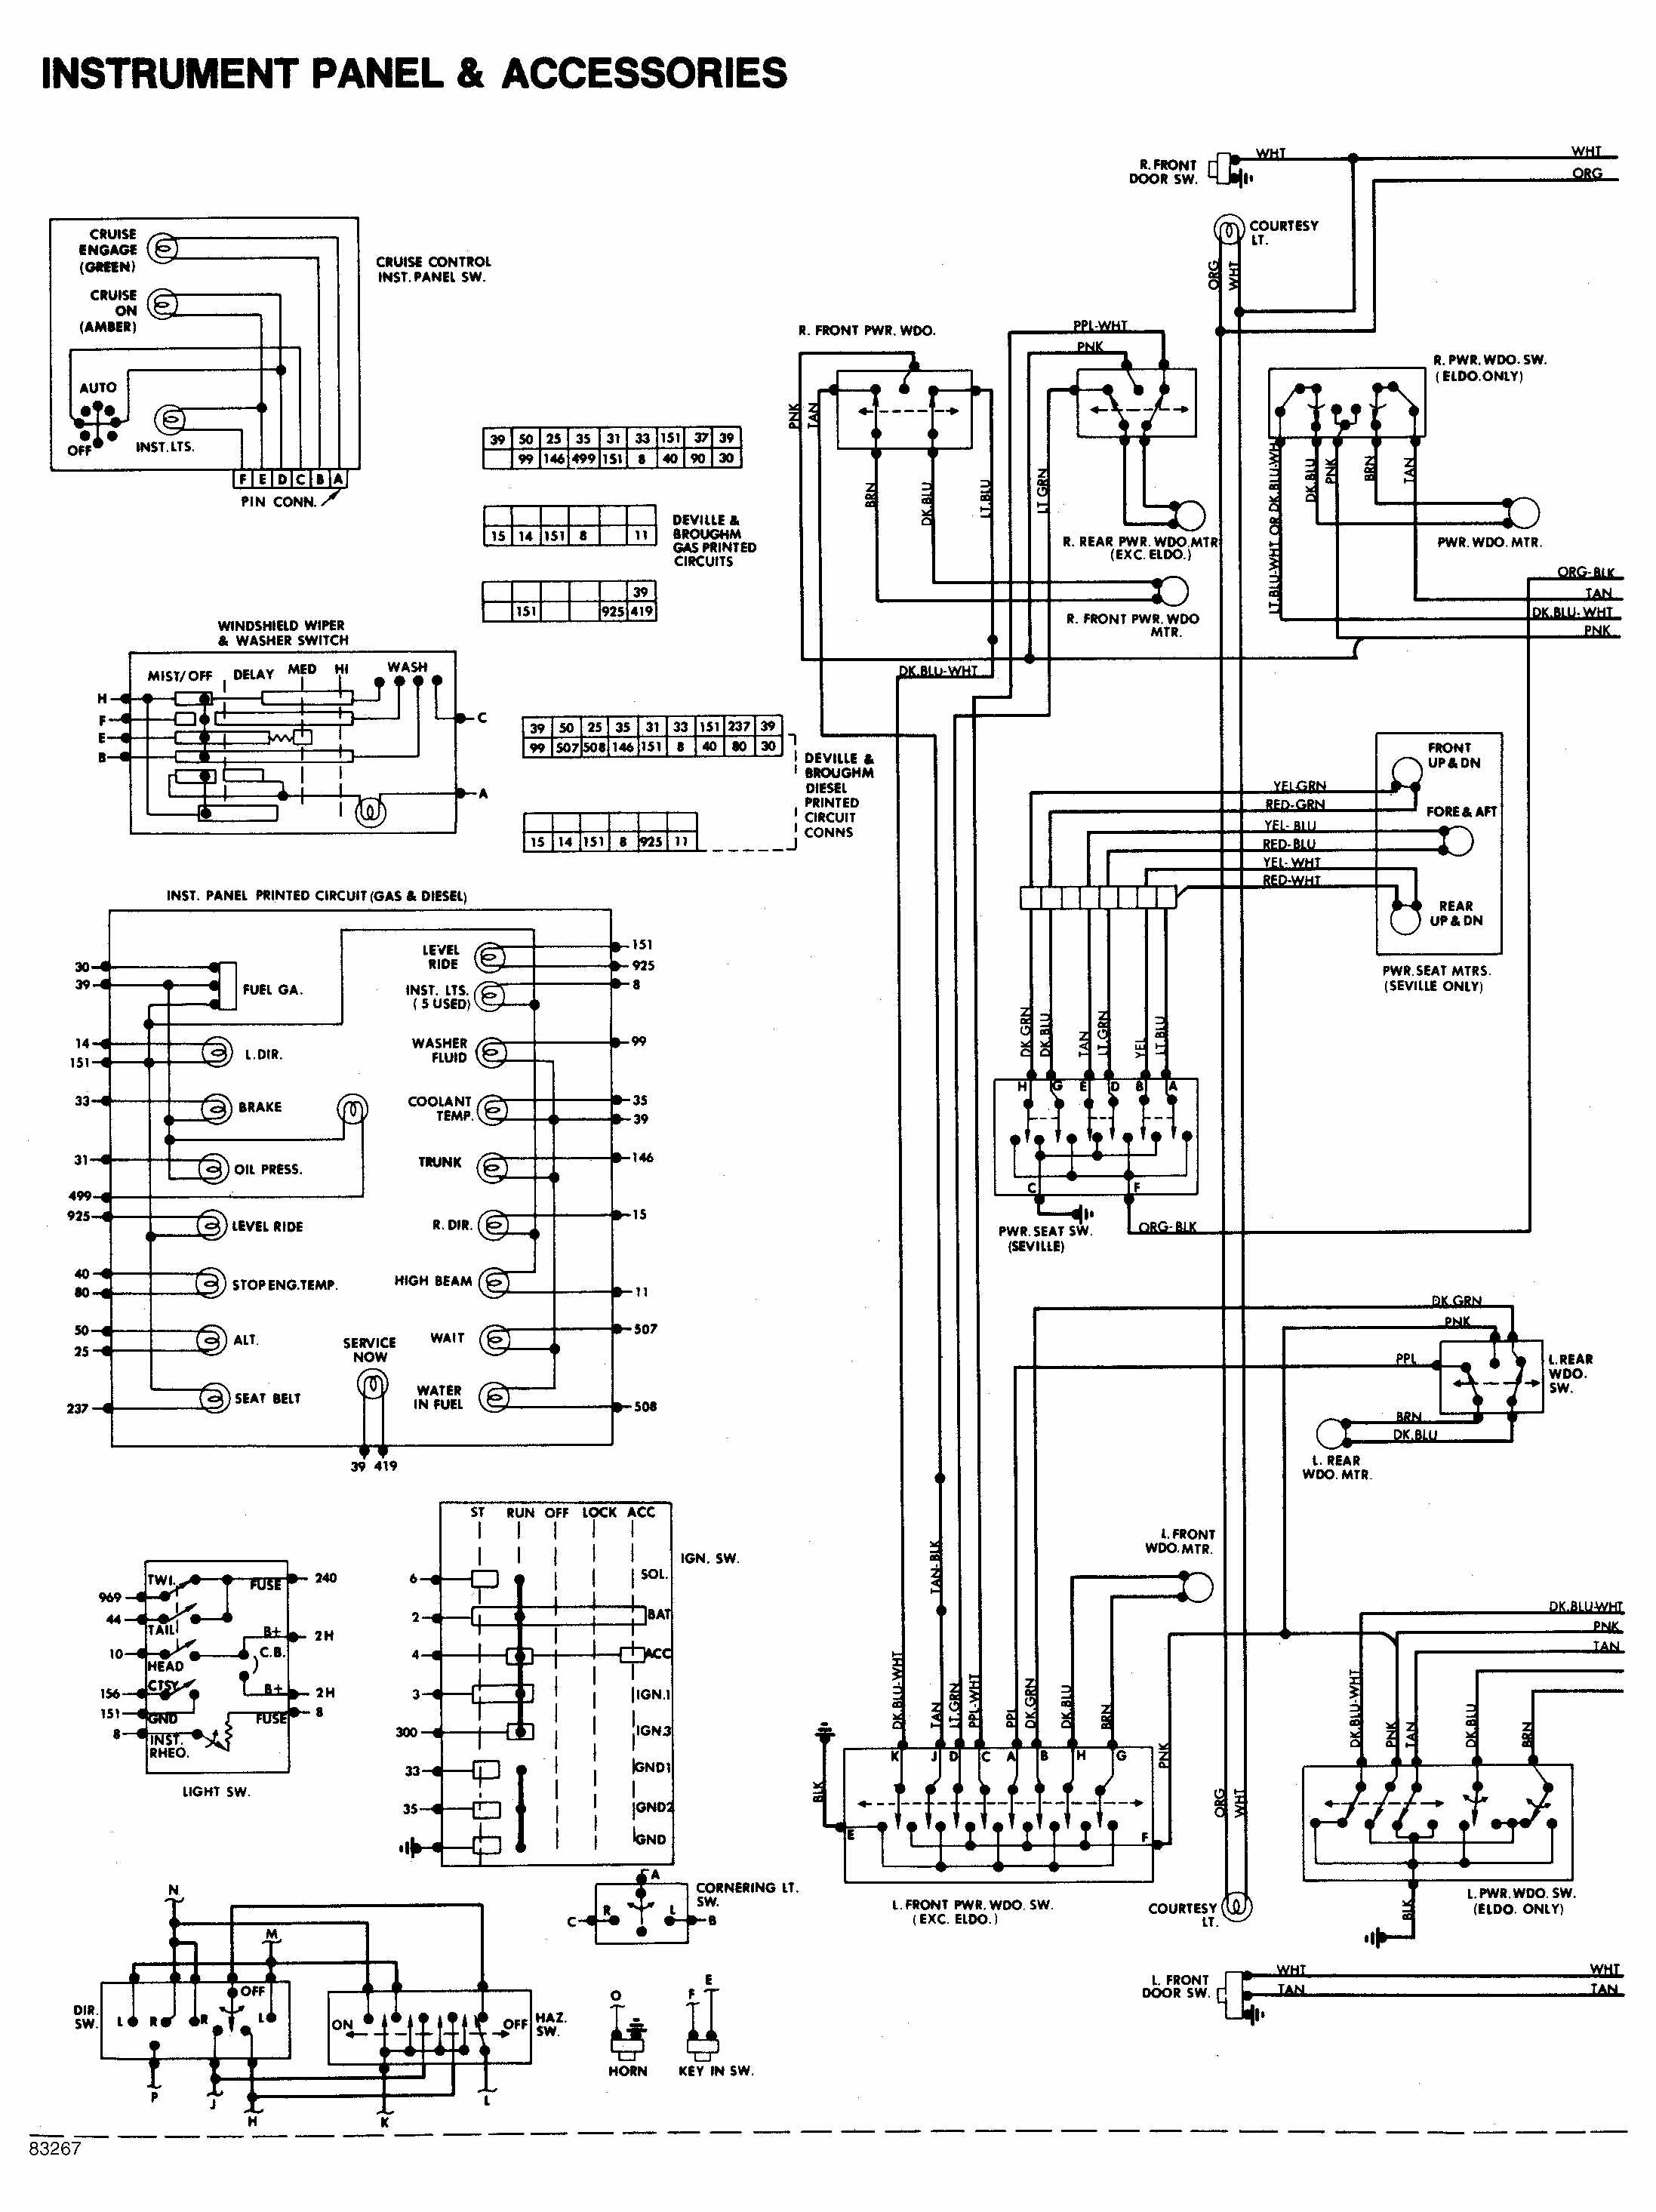 92 corvette wiring diagram circuit diagram template wiring corvette diagram 1992 stoplightrelay 92 corvette wiring diagram data wiring diagram1992 corvette engine diagram www cryptopotato co \\\\u2022